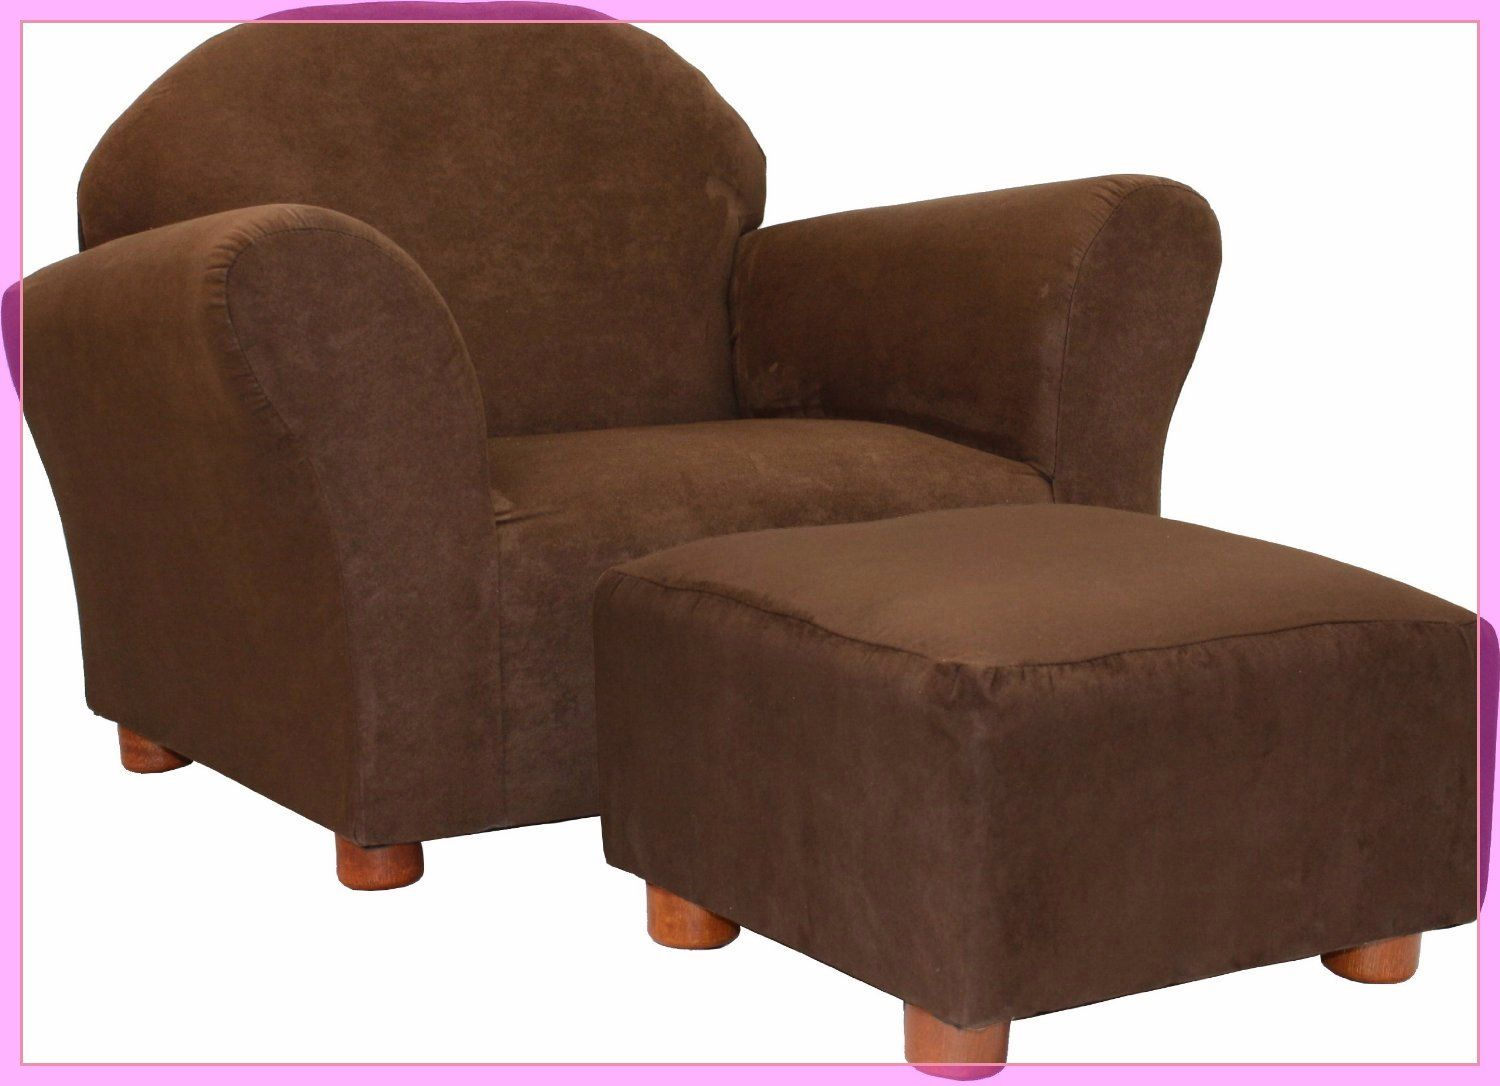 73 Reference Of Kids Chairs Ottoman In 2020 Chair And Ottoman Set Kids Sofa Chair Fantasy Furniture